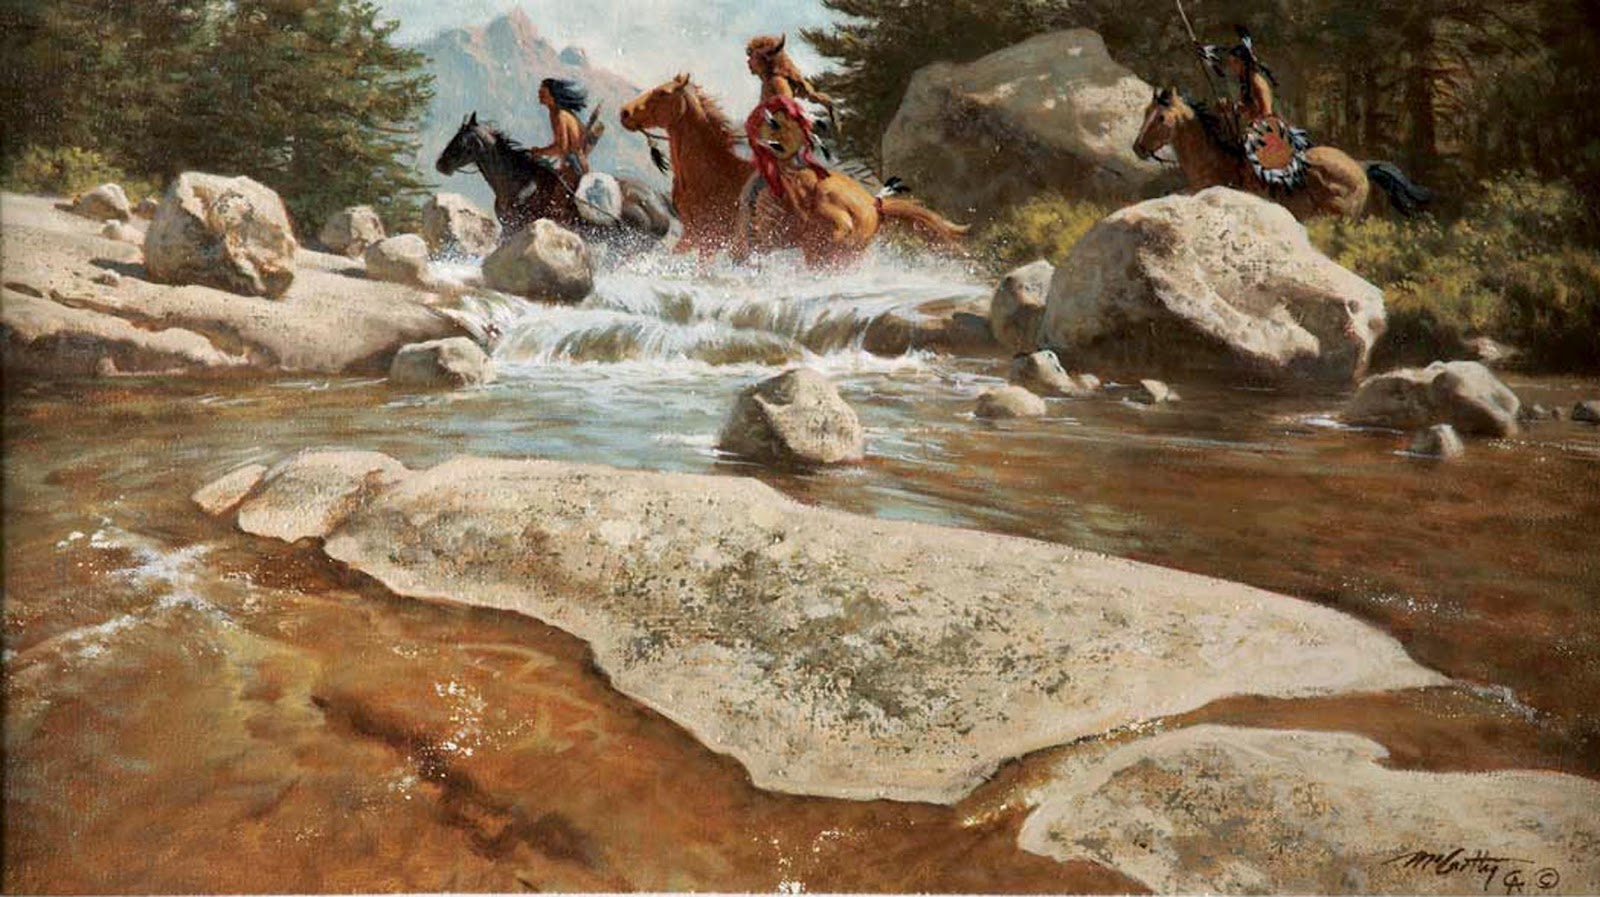 Graham Arader A Captivating Western Scene By Frank C Mccarthy